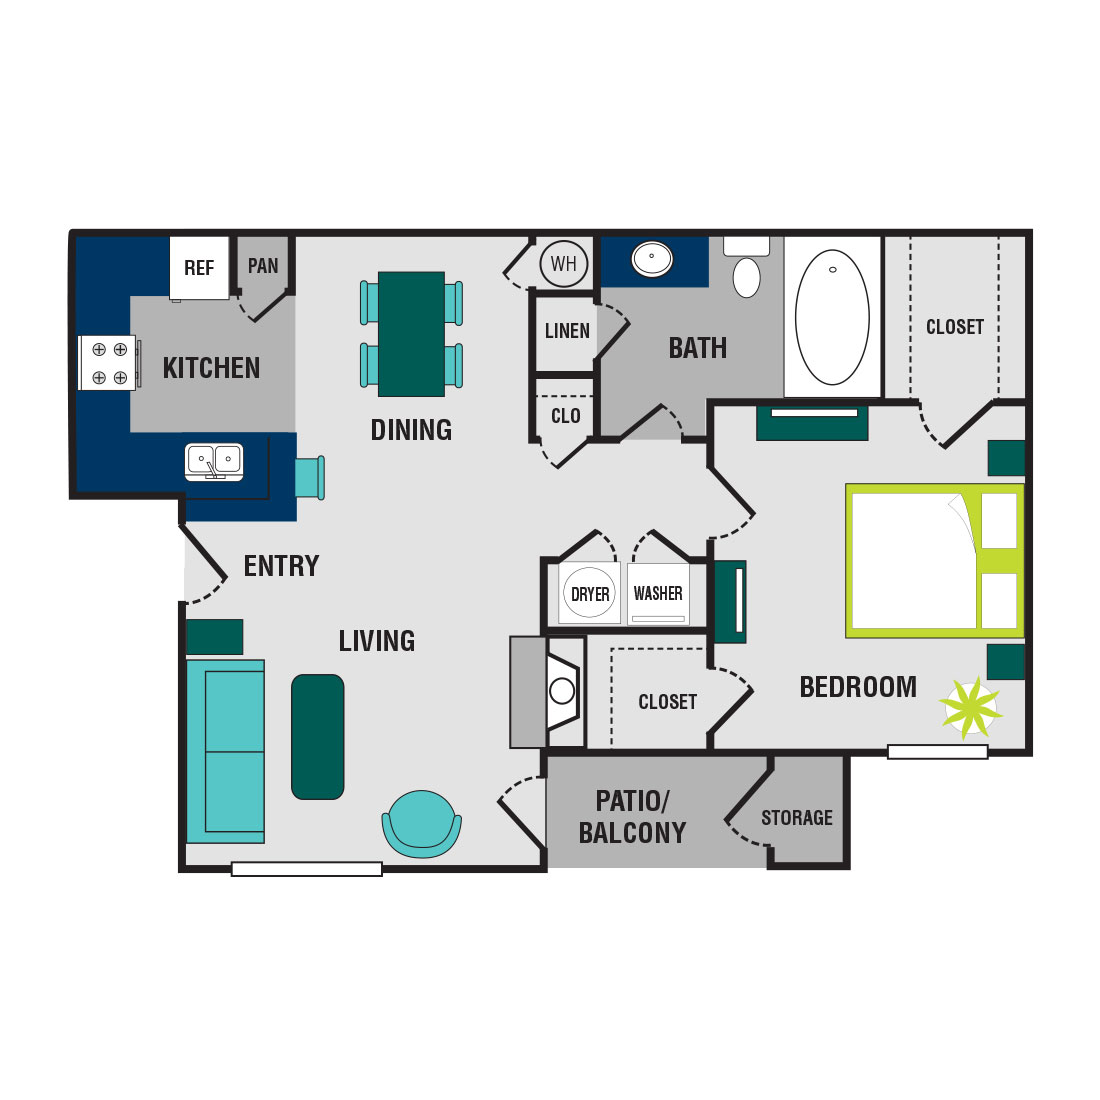 Floorplan - Upgraded 1 Bedroom image